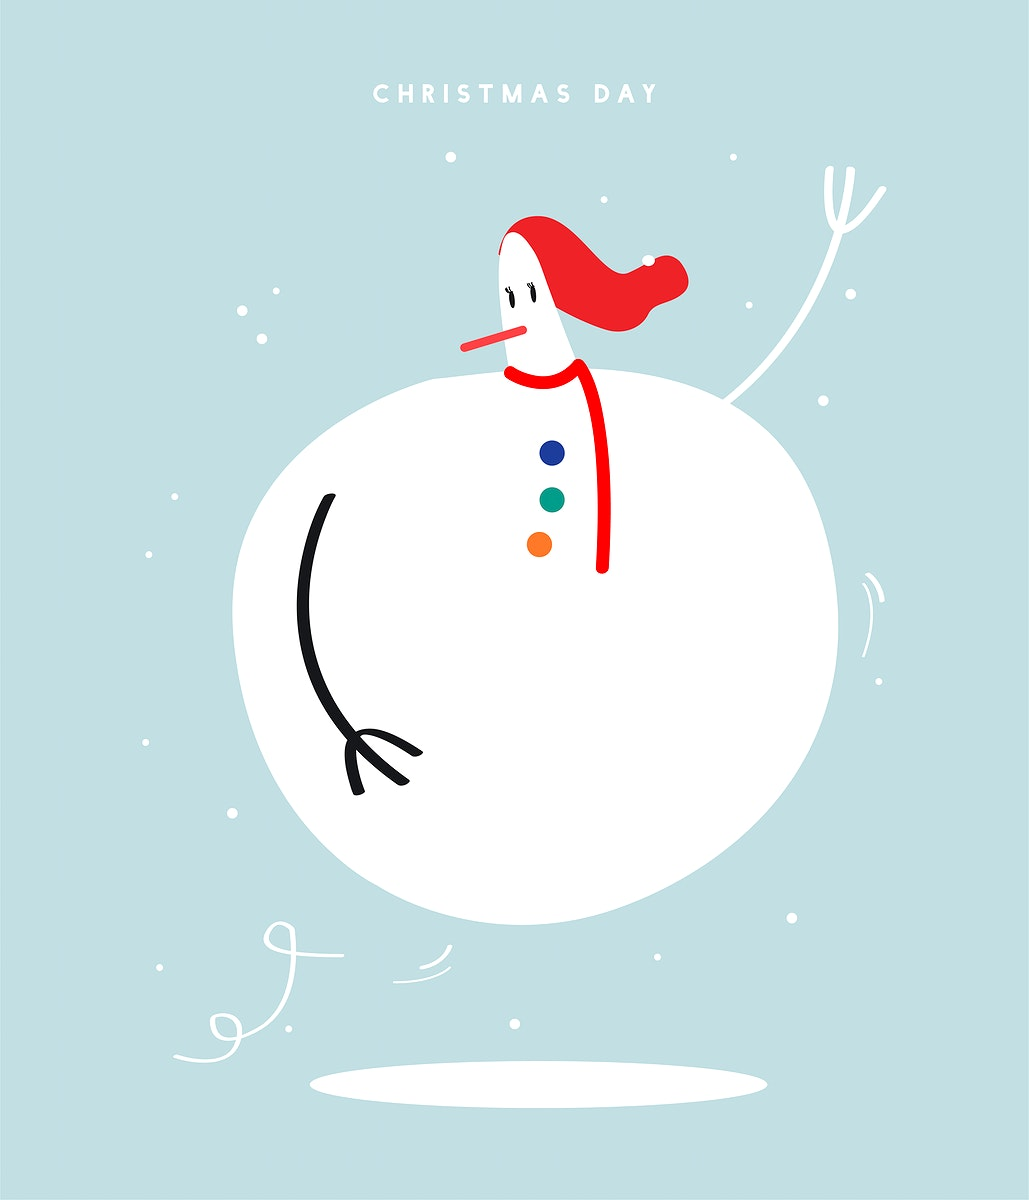 Merry Christmas day concept illustration